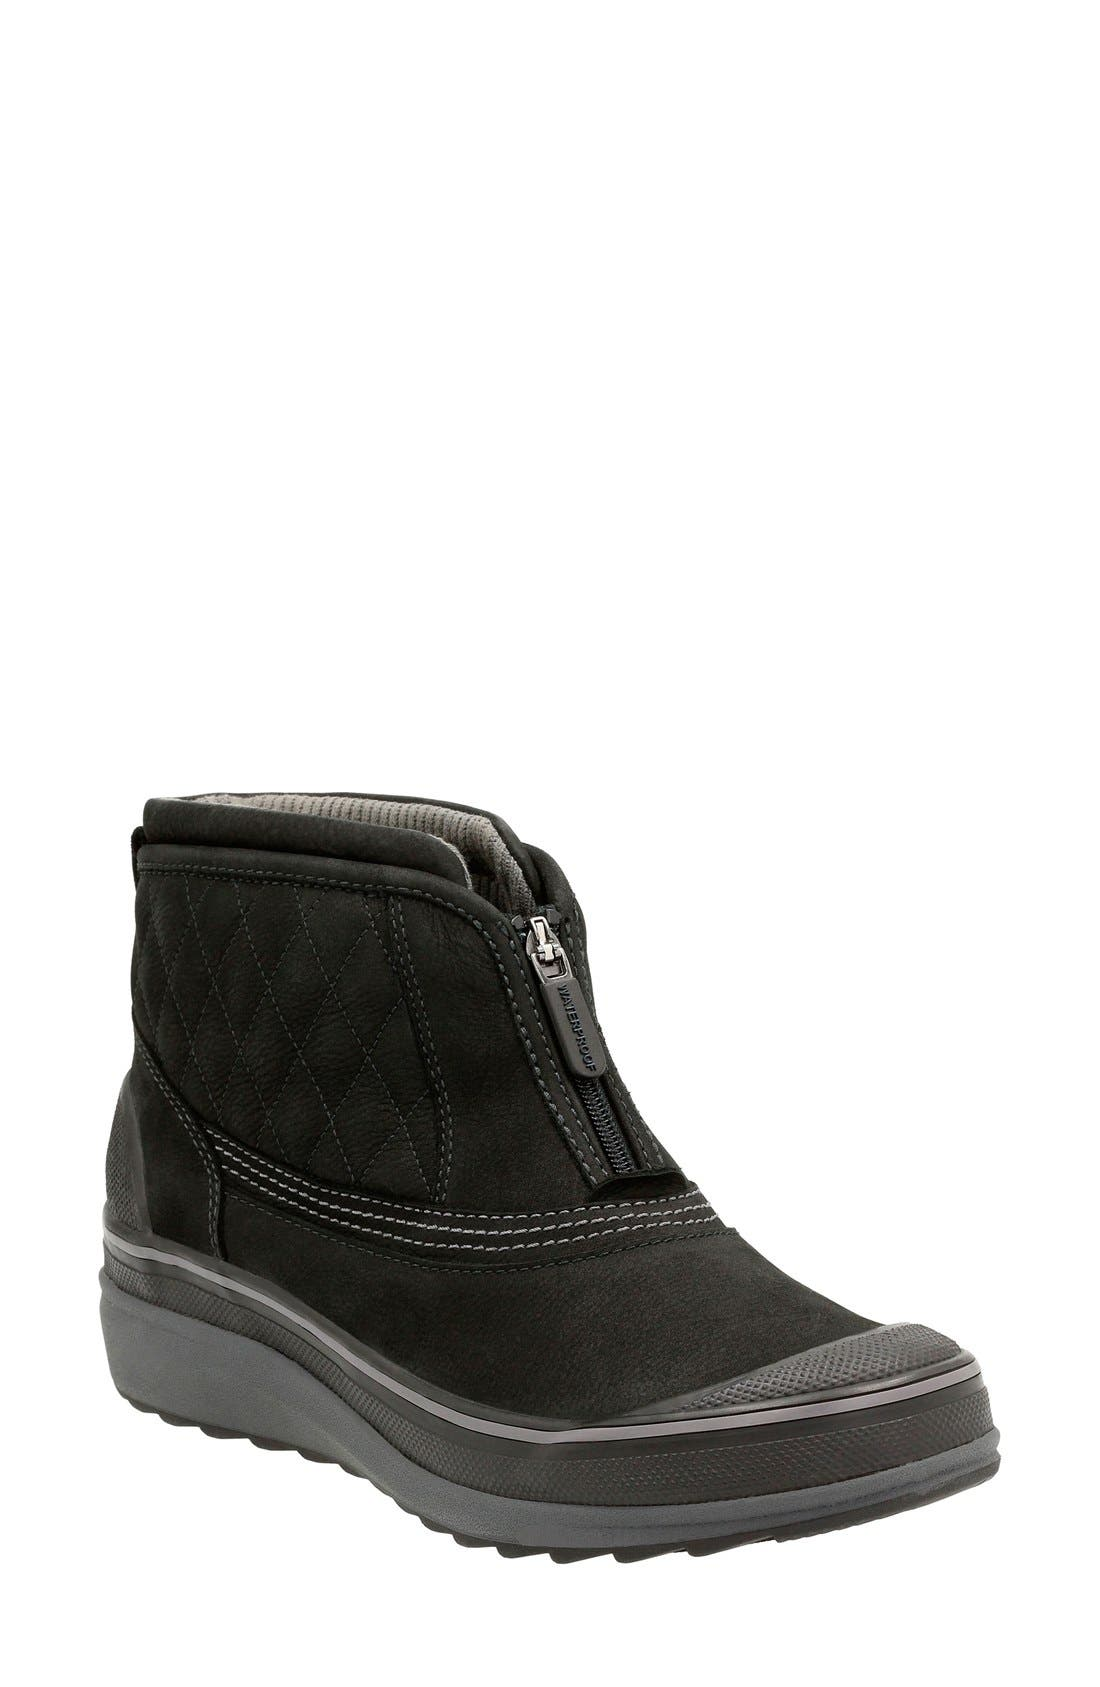 'Muckers Swale' Waterproof Boot,                             Main thumbnail 1, color,                             002